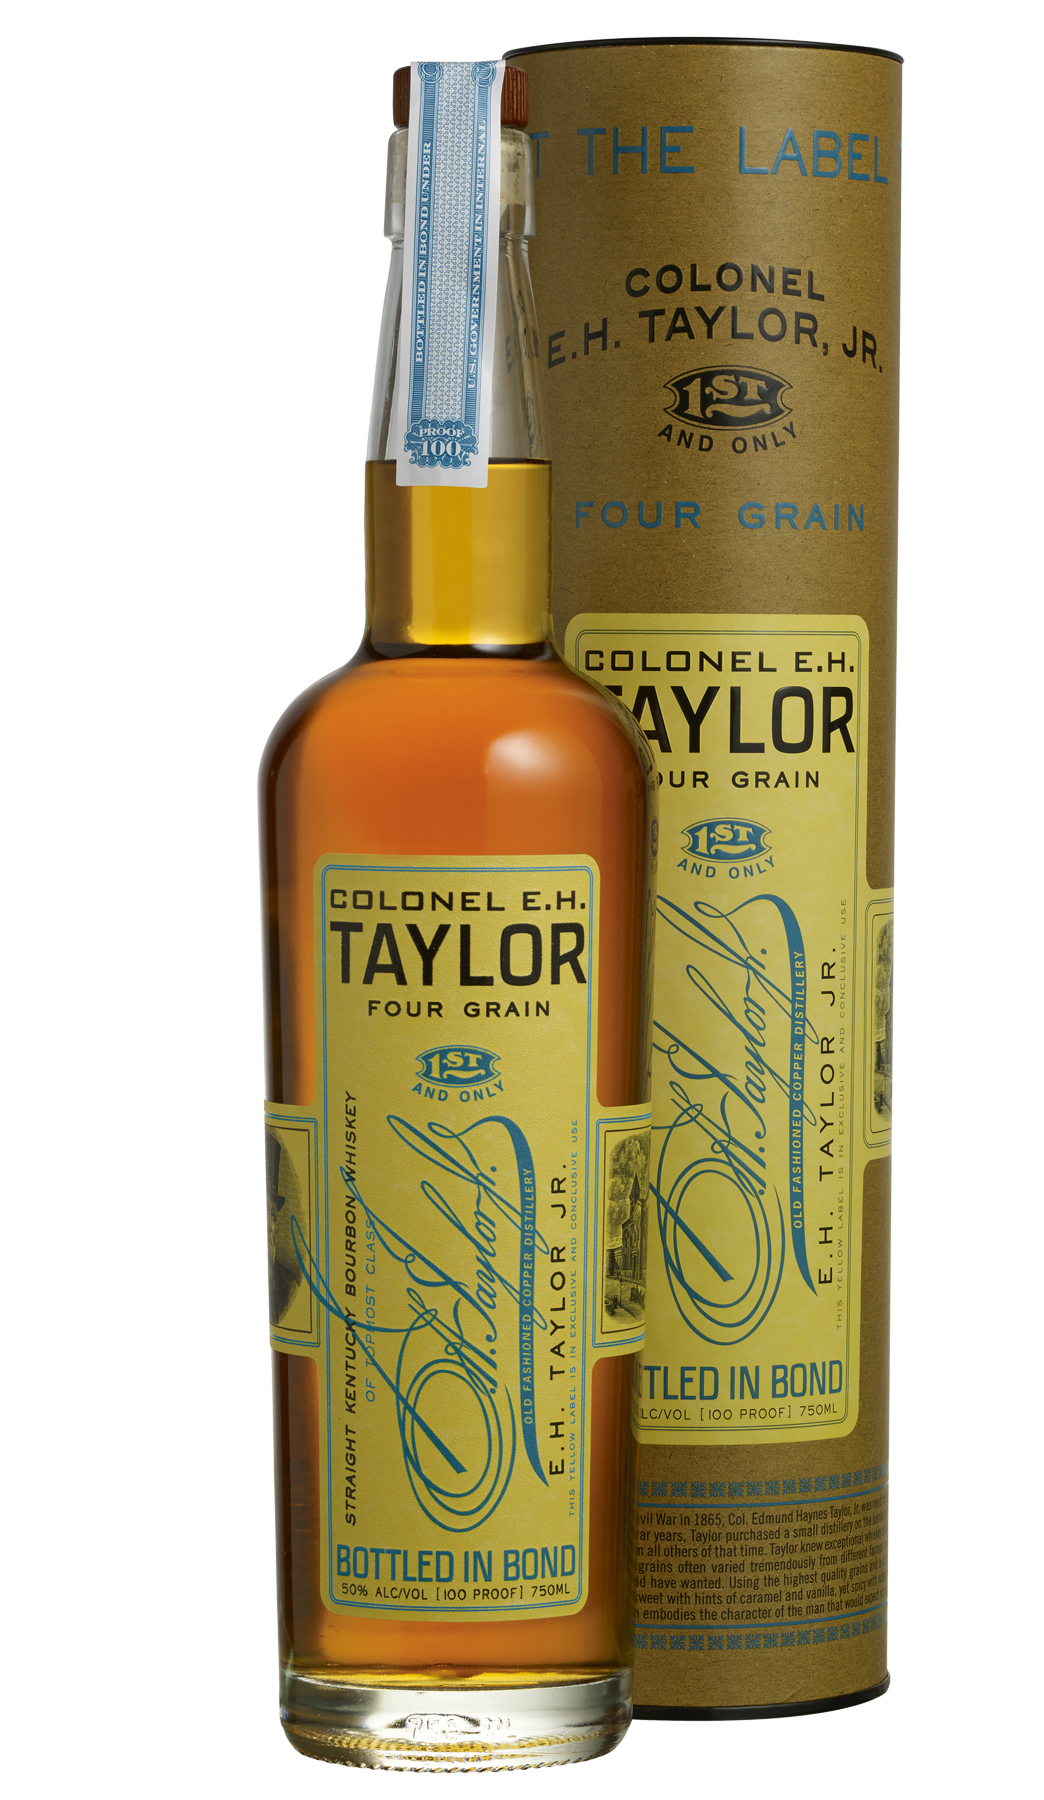 Buffalo Trace releases Eh Taylor 4 Grain.